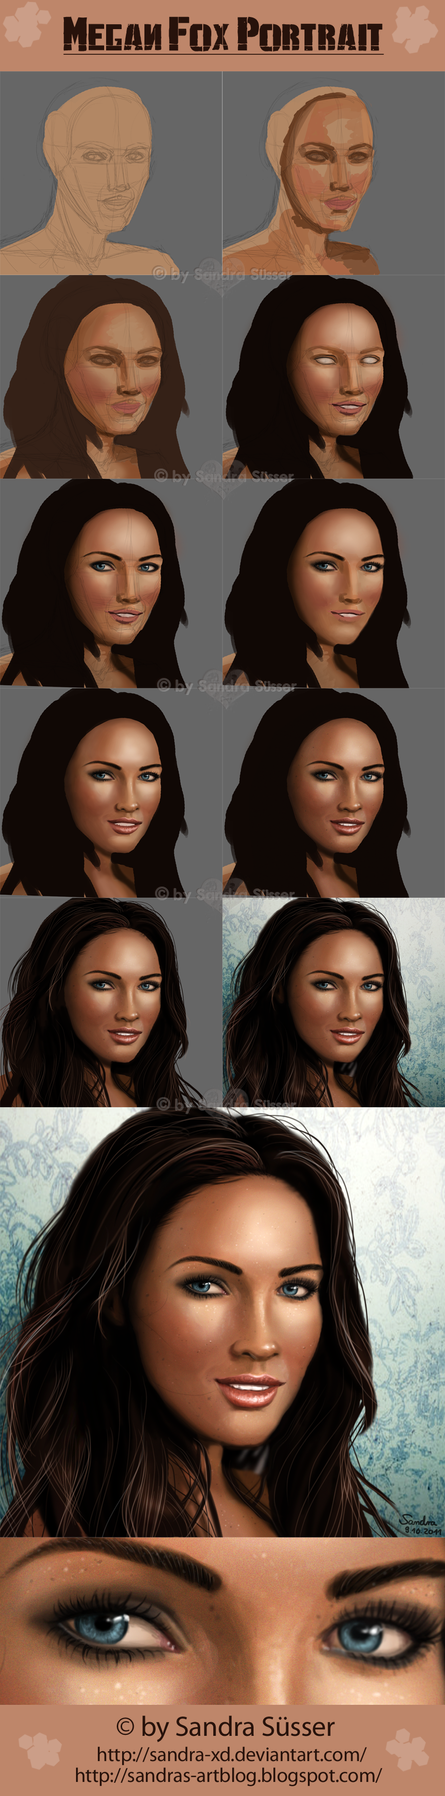 WIP - Megan Fox Portrait by Sadako-xD